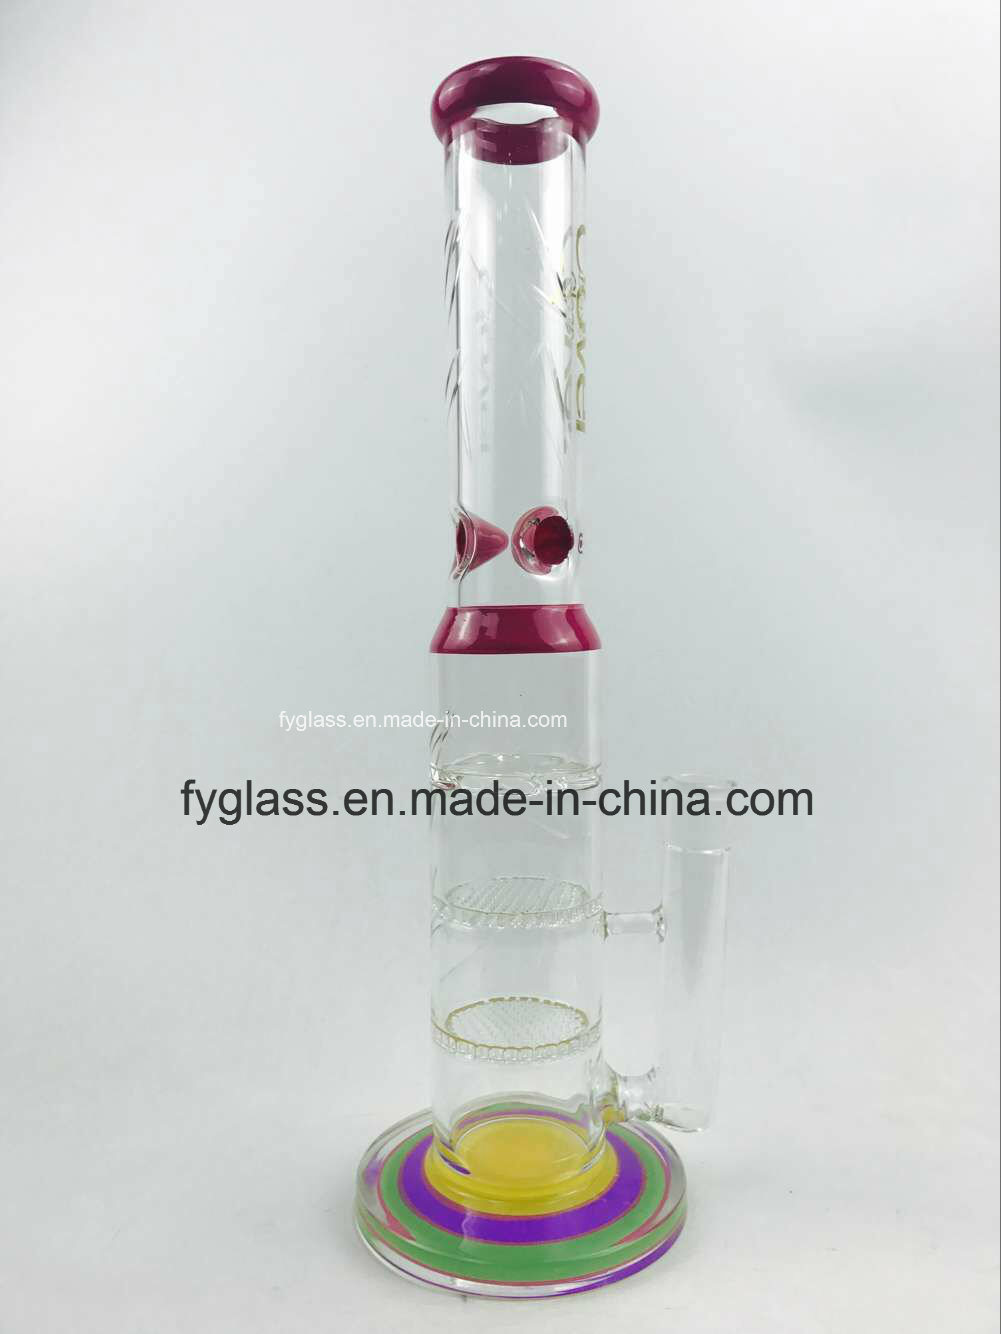 New Profile Glass Smoking Water Pipe with Color Beaker